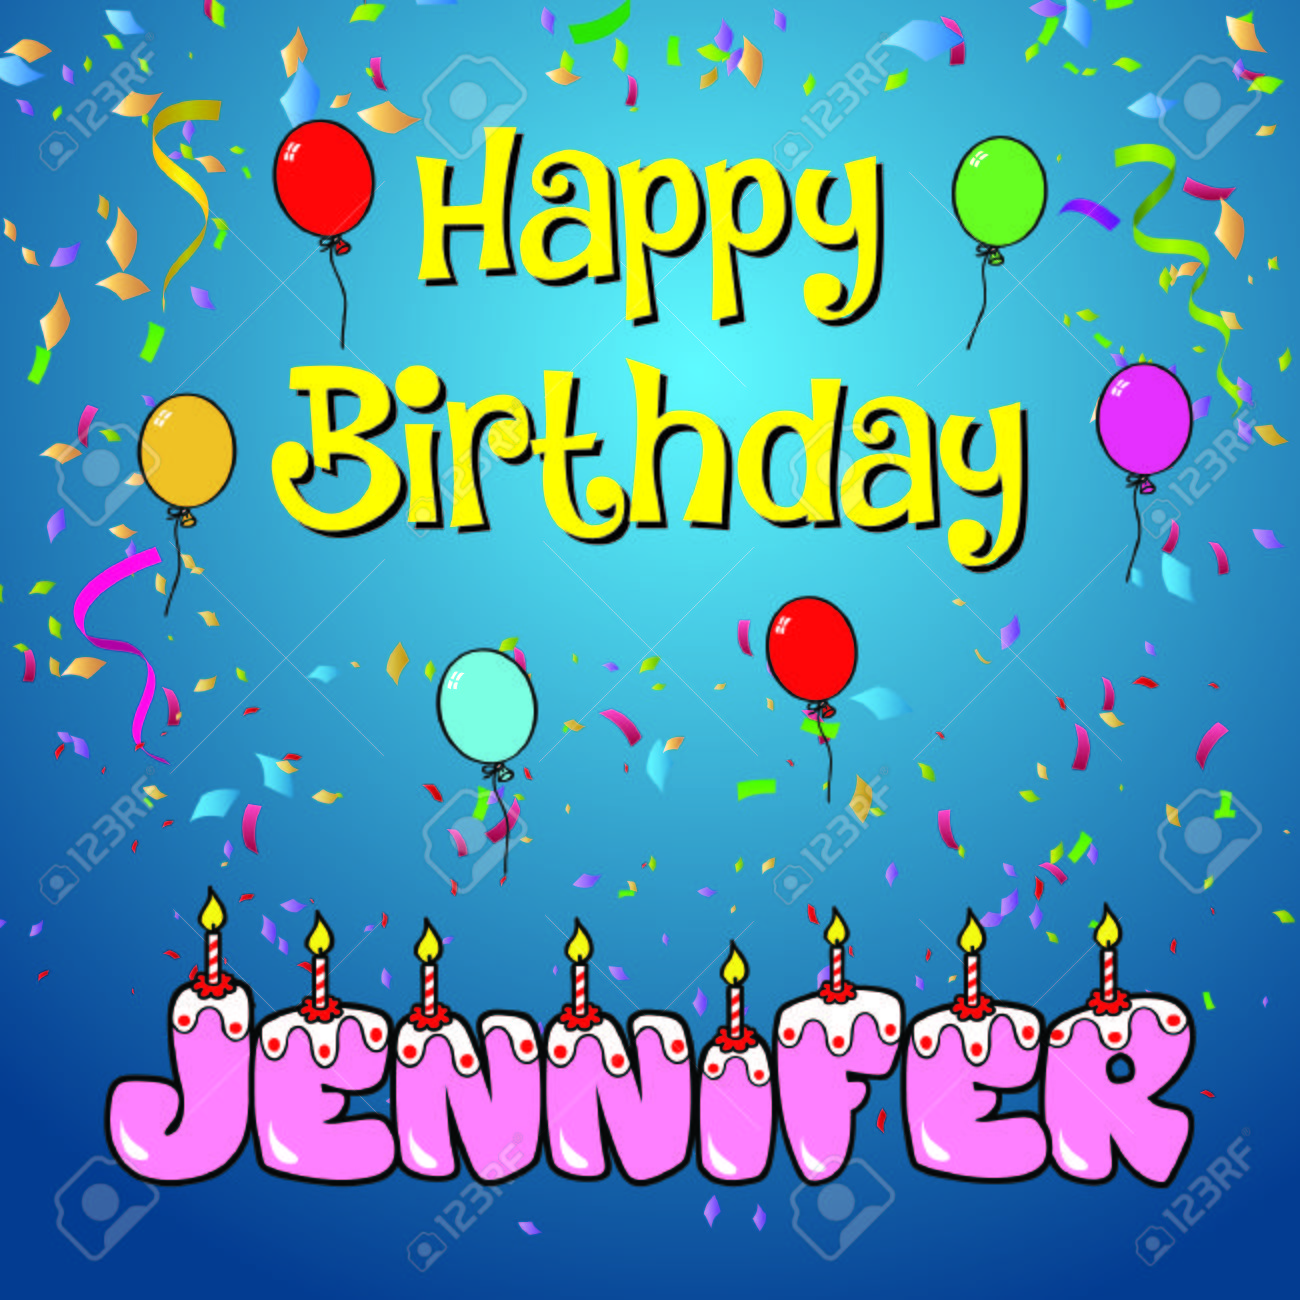 happy birthday jennifer photo ; 76572286-happy-birthday-jennifer